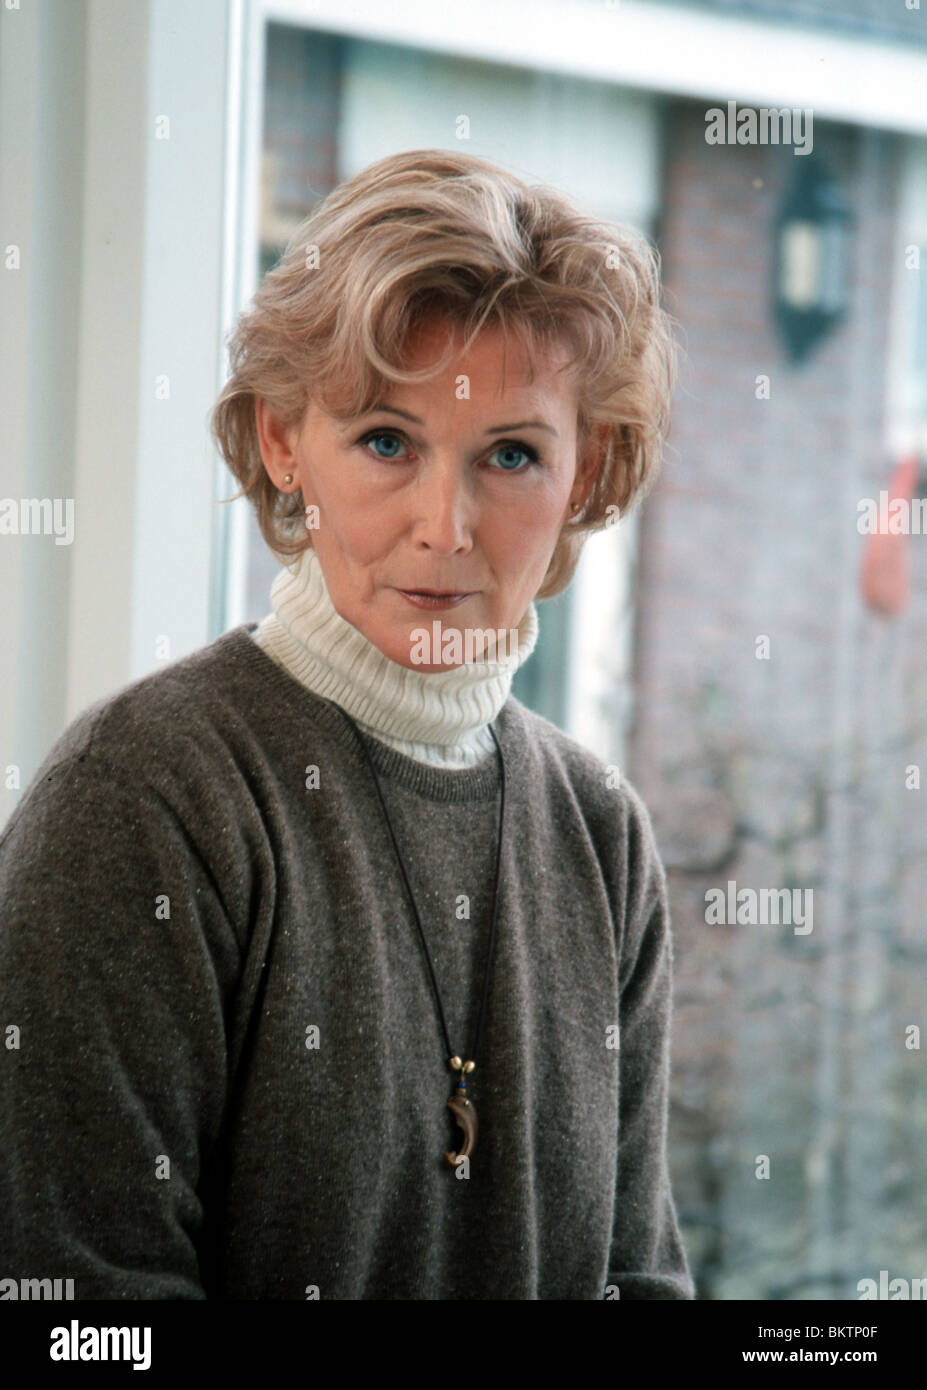 Portraits unhappy woman 50 worried - Stock Image